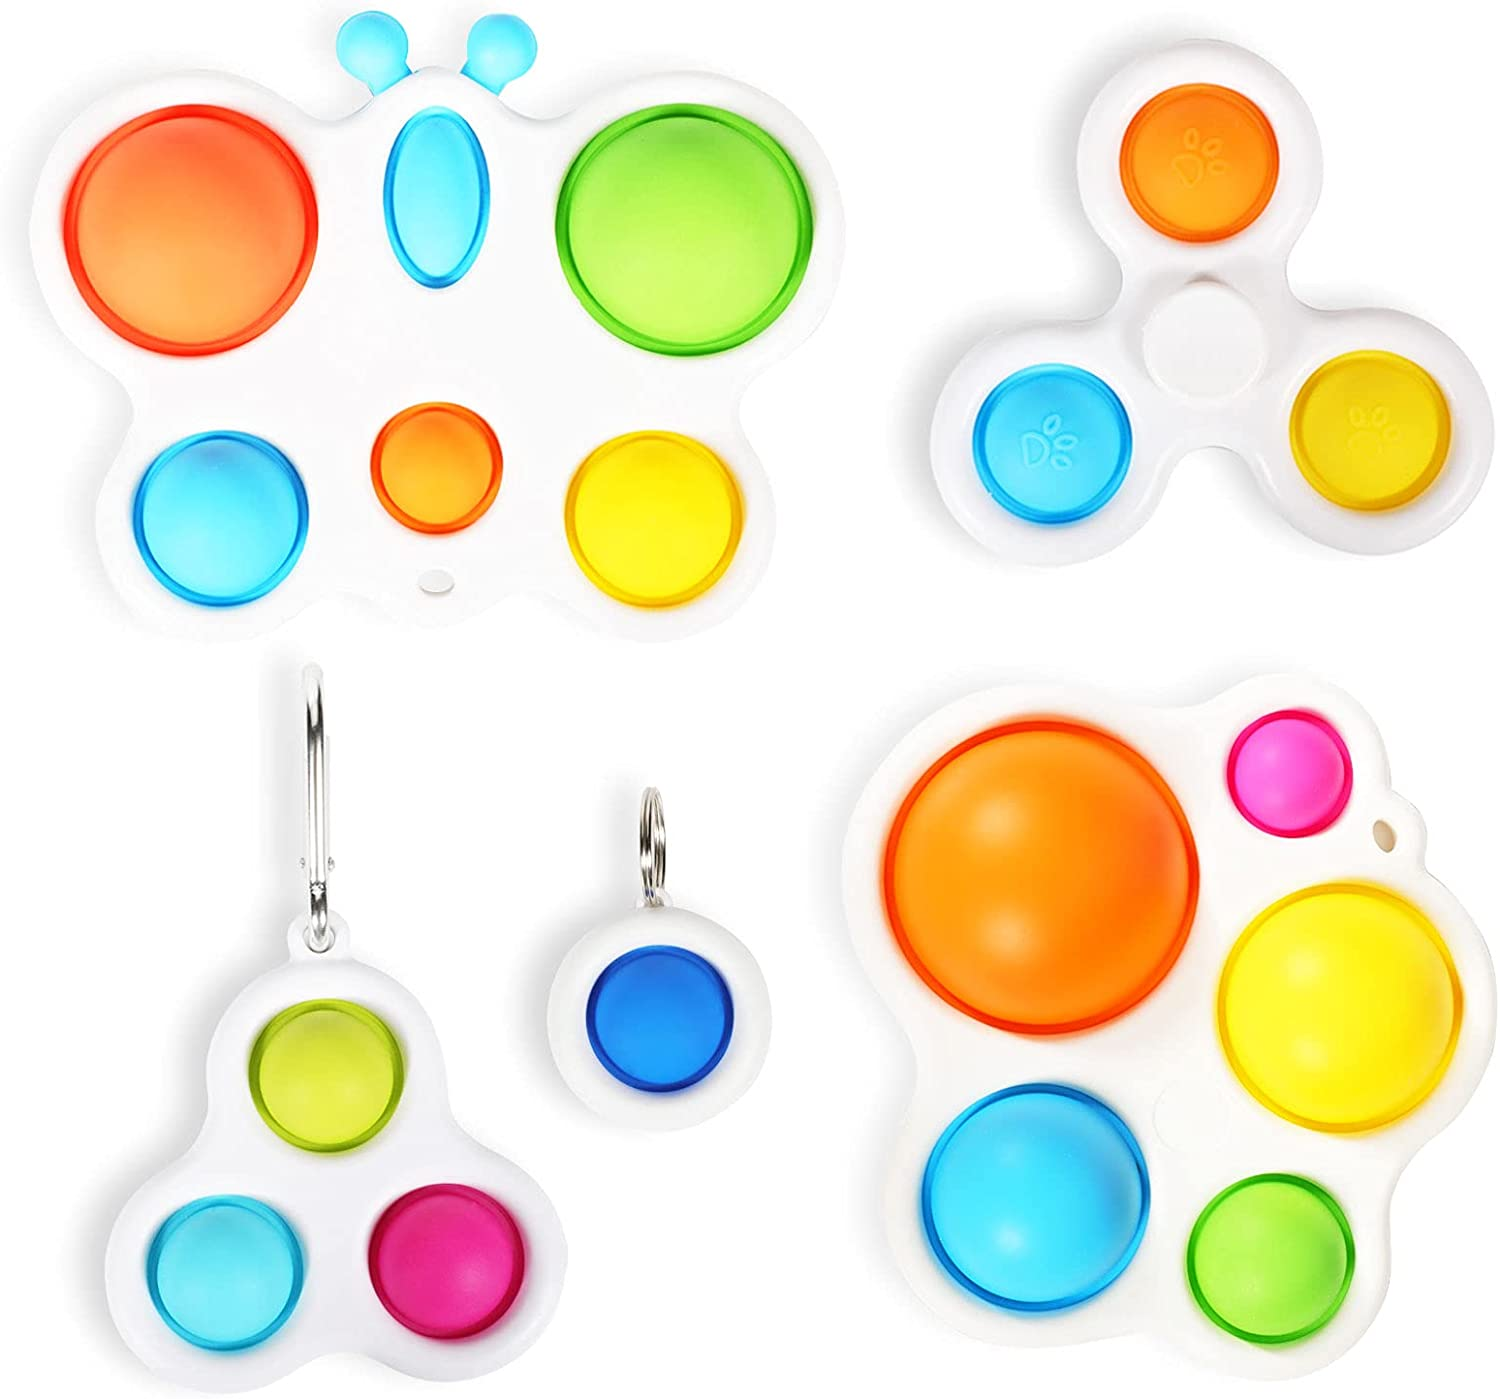 Arme Simple Dimple Sensory Fidget Blocks,A Simple Dimple Fidget Toy Set ,Mini Simple dimple Toy Suit Easy to Use,Easy to Carry Stress and Anxiety Relief Handheld Toys Set for Kids and Adults(5Pcs)